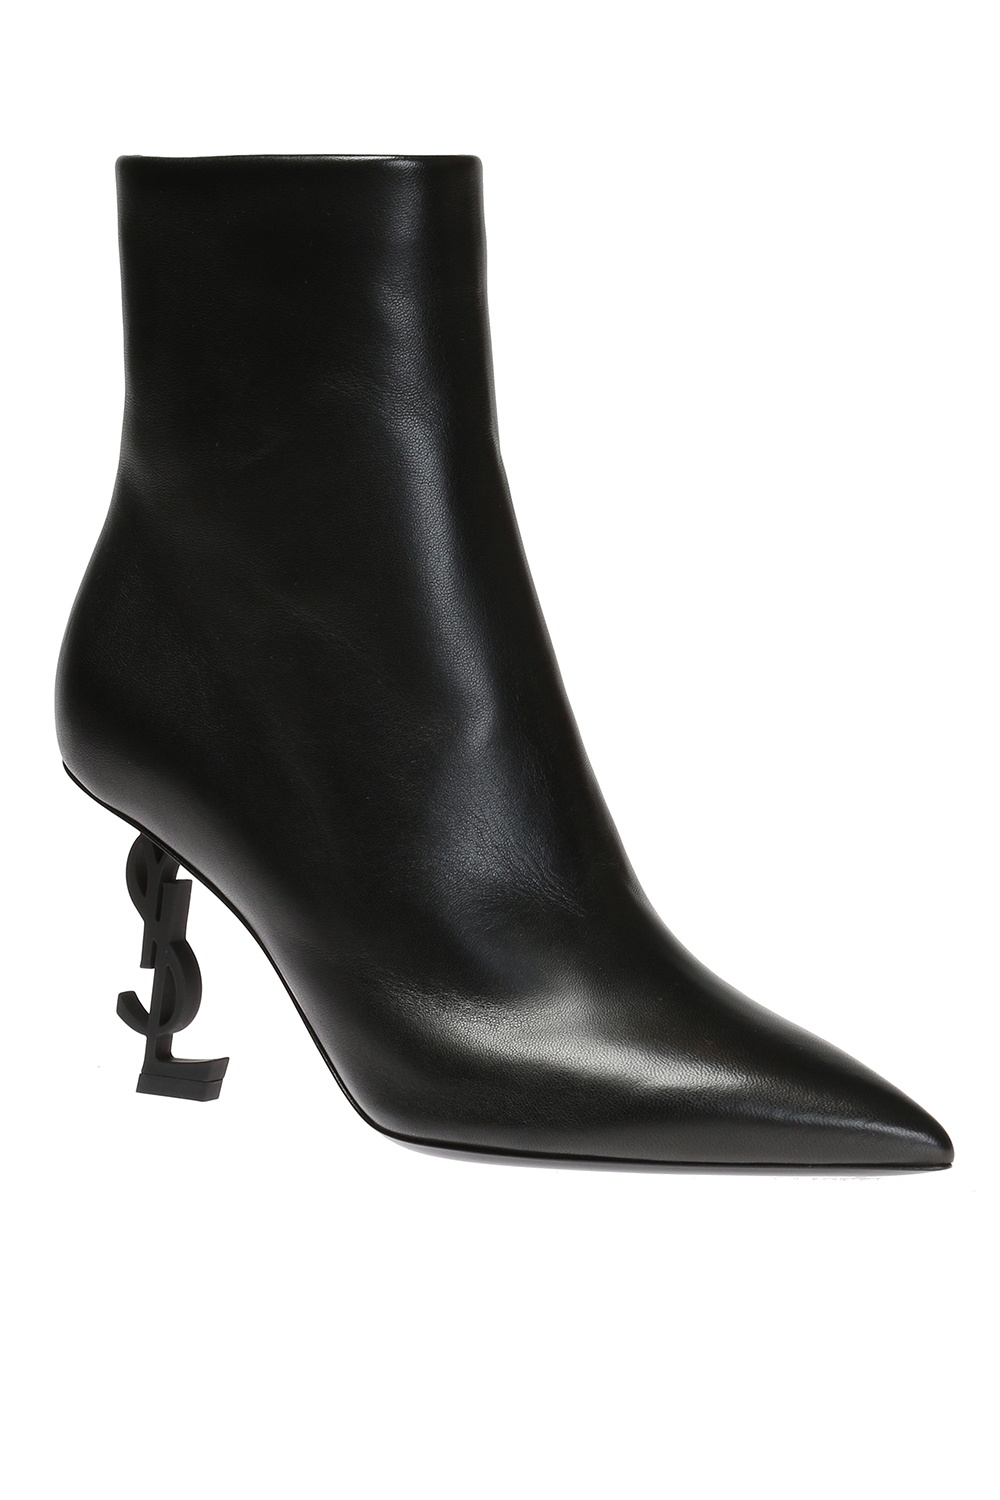 Saint Laurent 'Opyum' heeled ankle boots